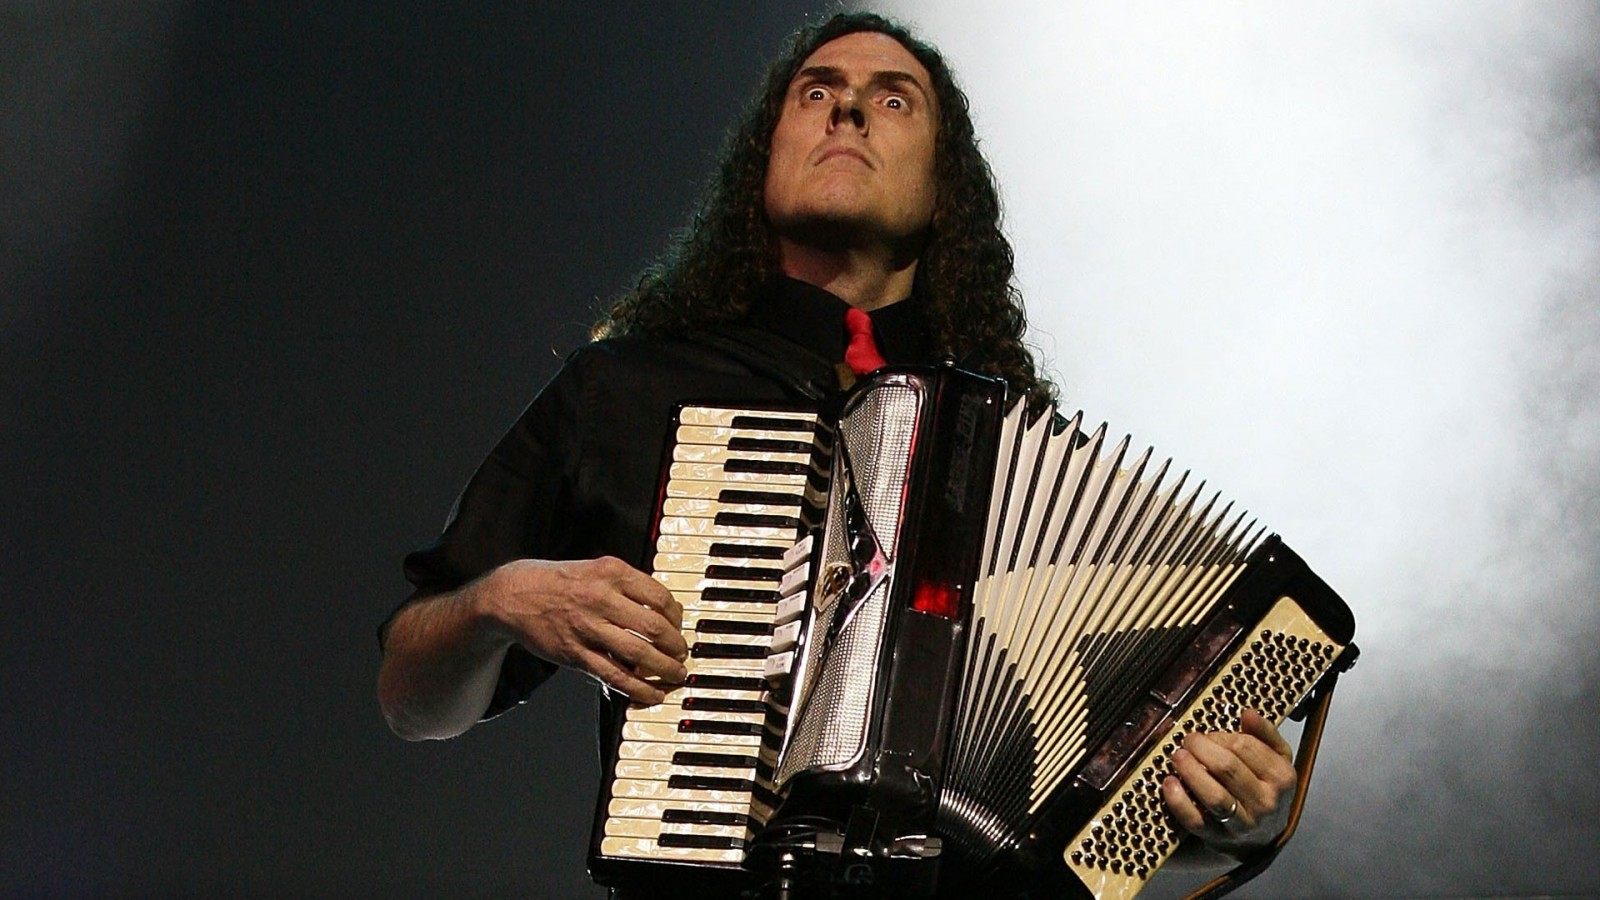 Transformers News: Weird Al Yankovic Selected for Hollywood Walk of Fame Star